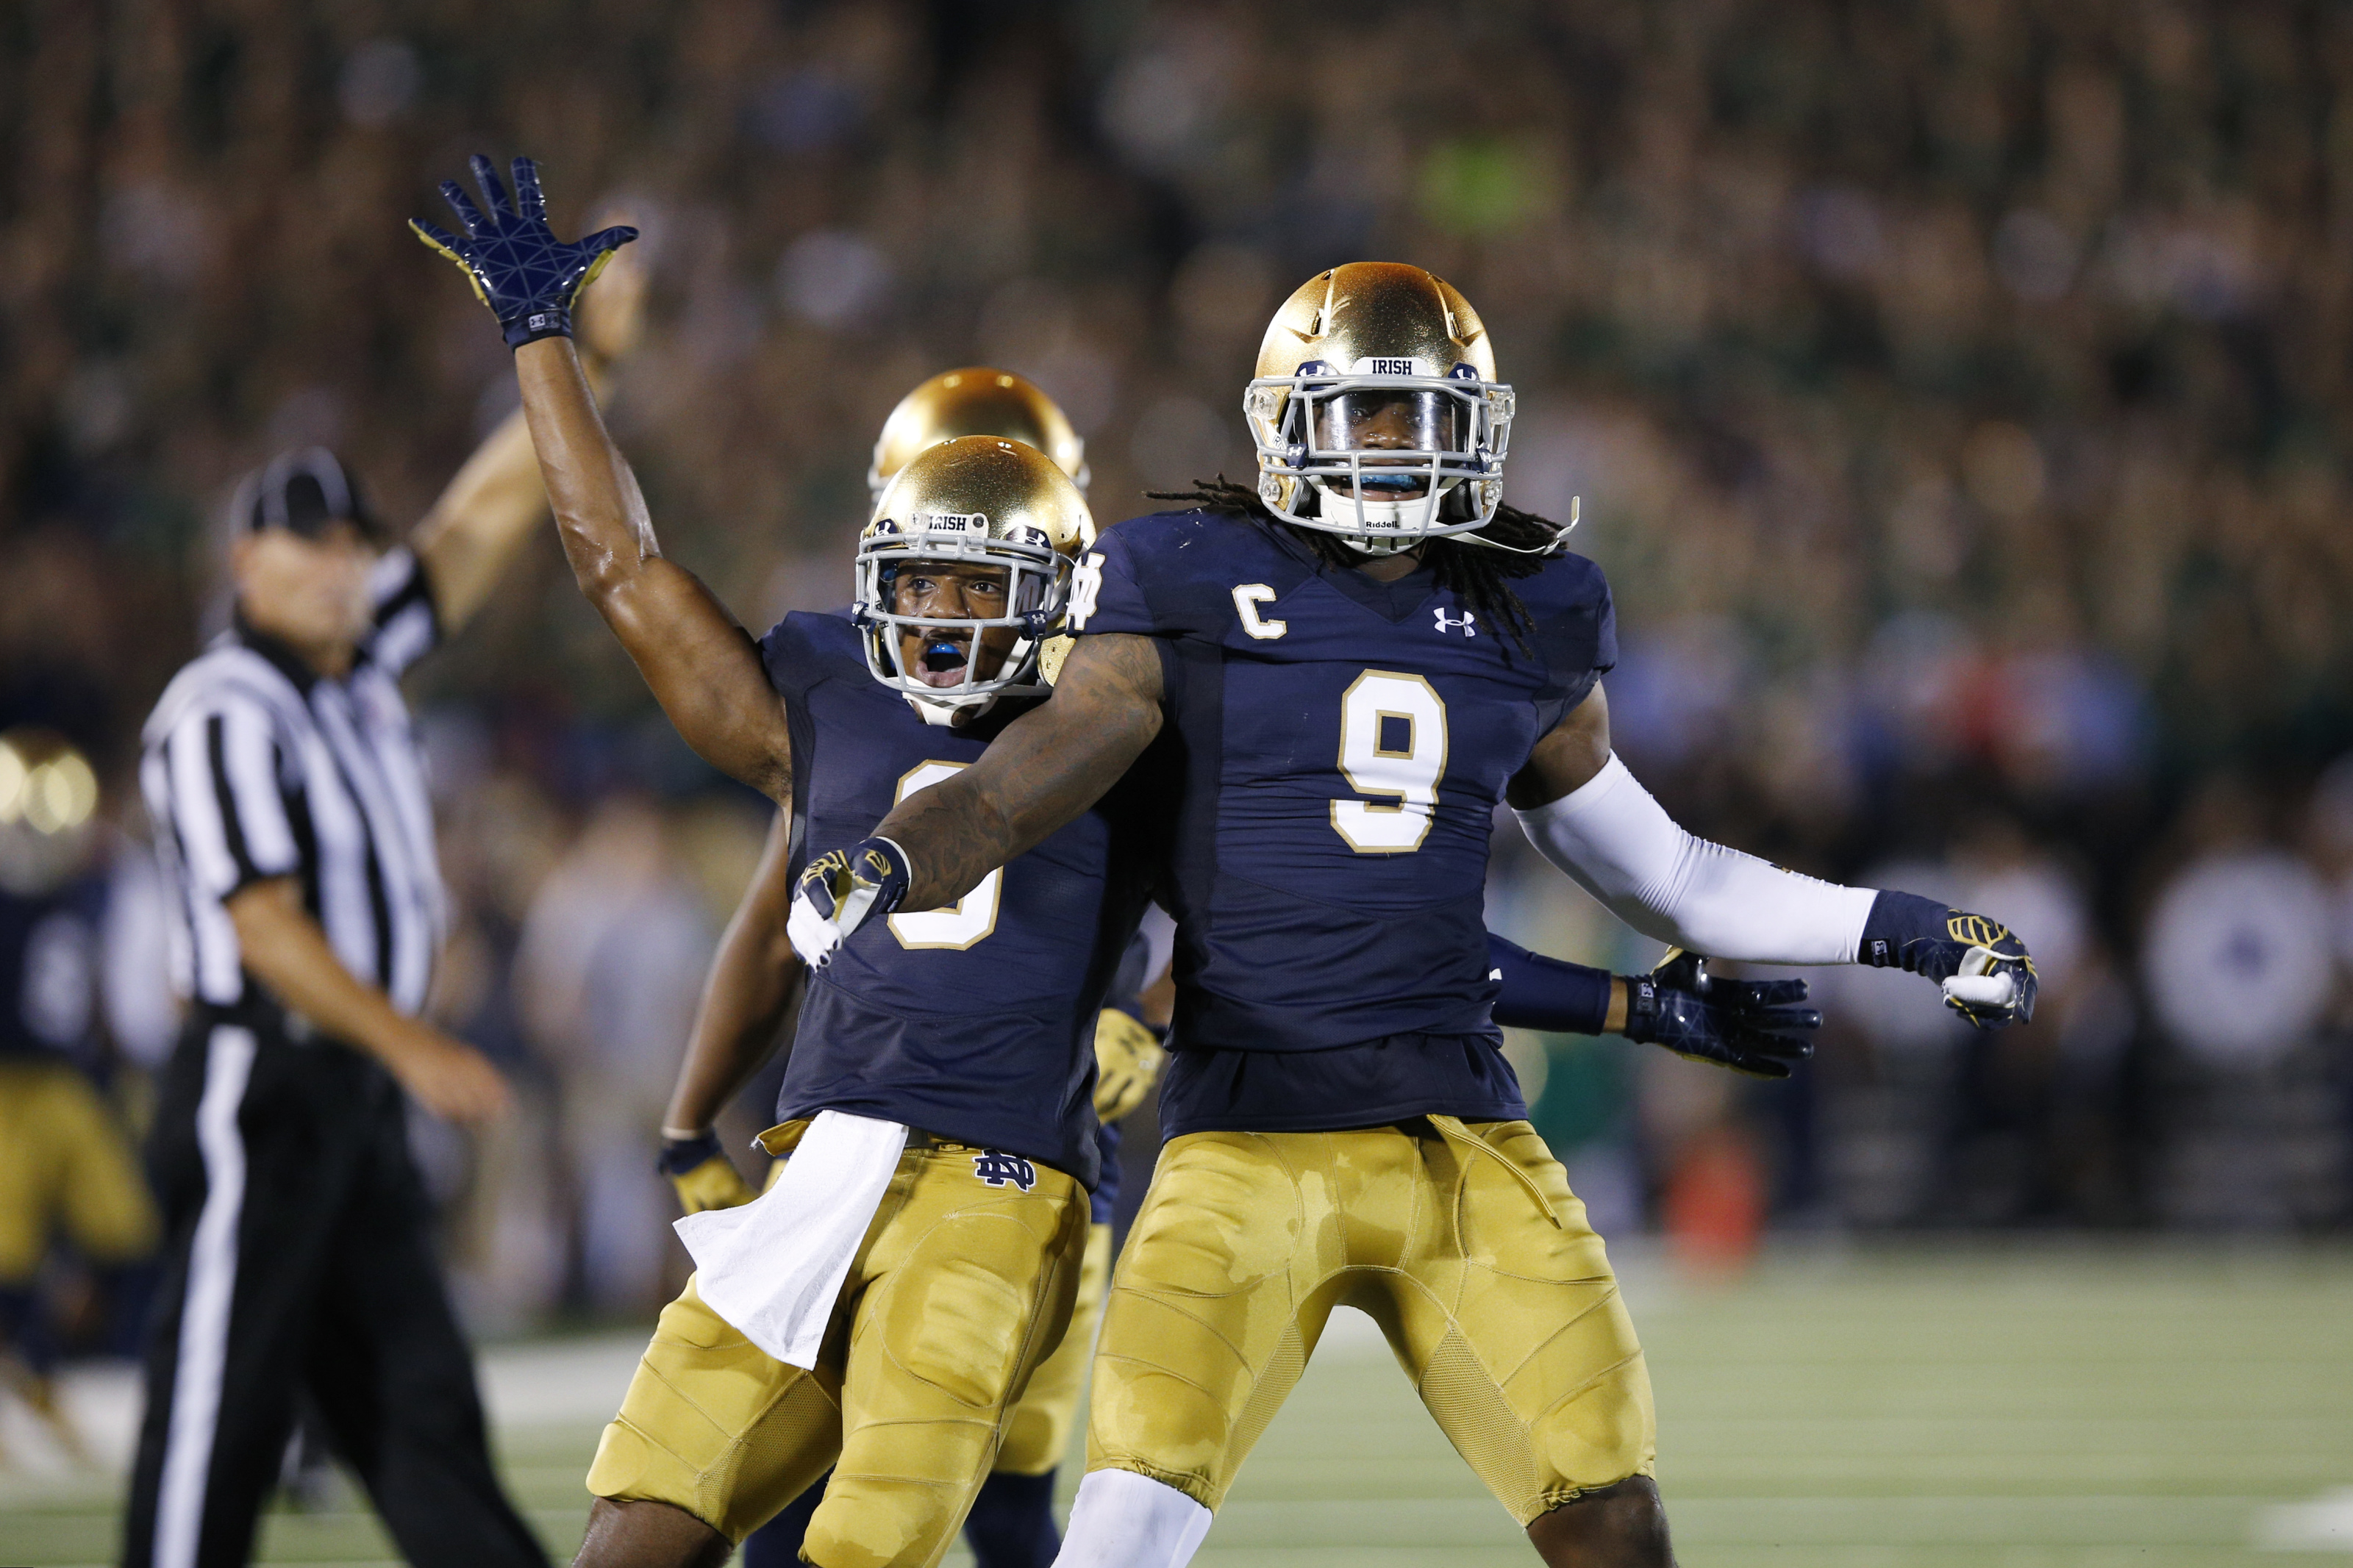 Notre Dame Football: Jaylon Smith must really love the No. 9